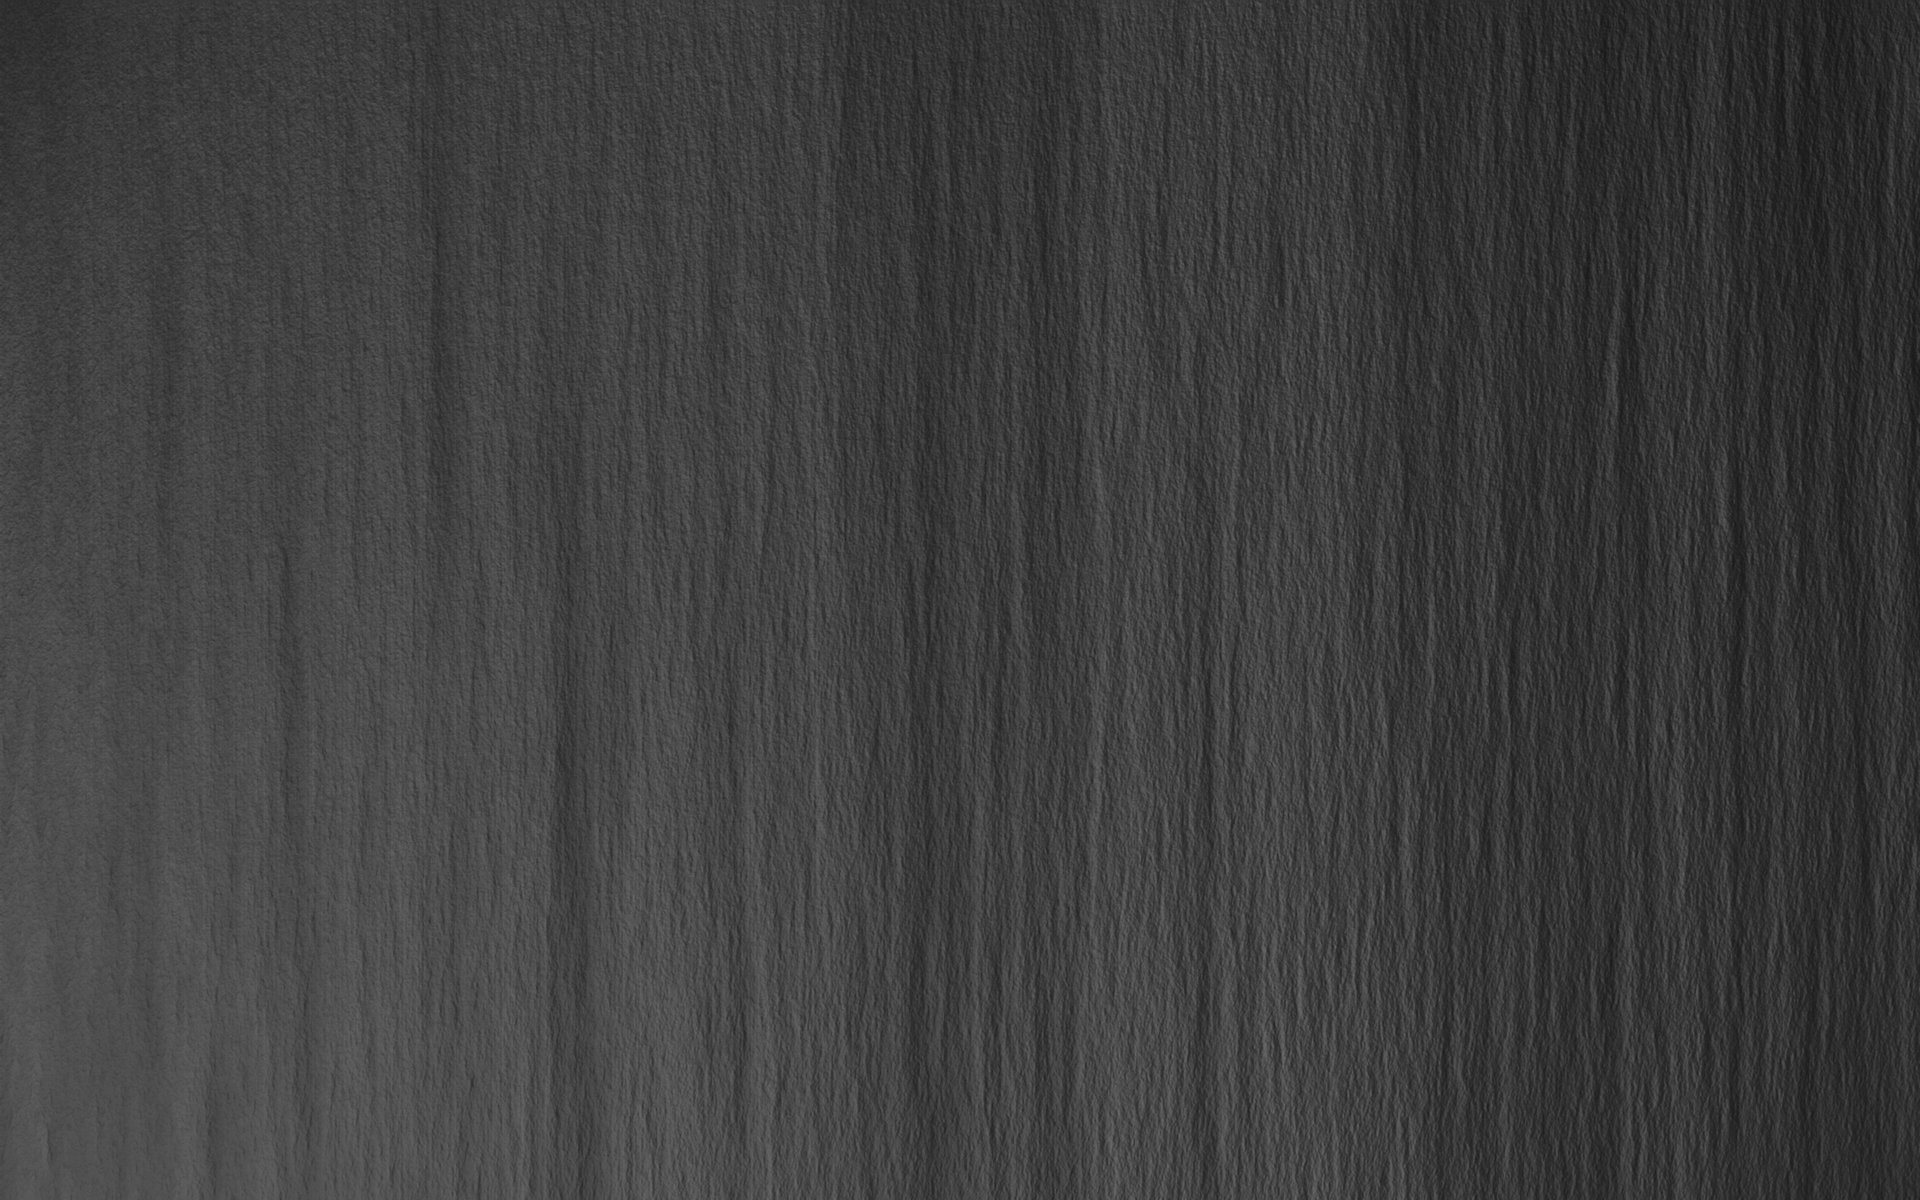 Black and white wallpapers grey abstract wallpaper html code - Grey Wallpaper Wallpapersafari